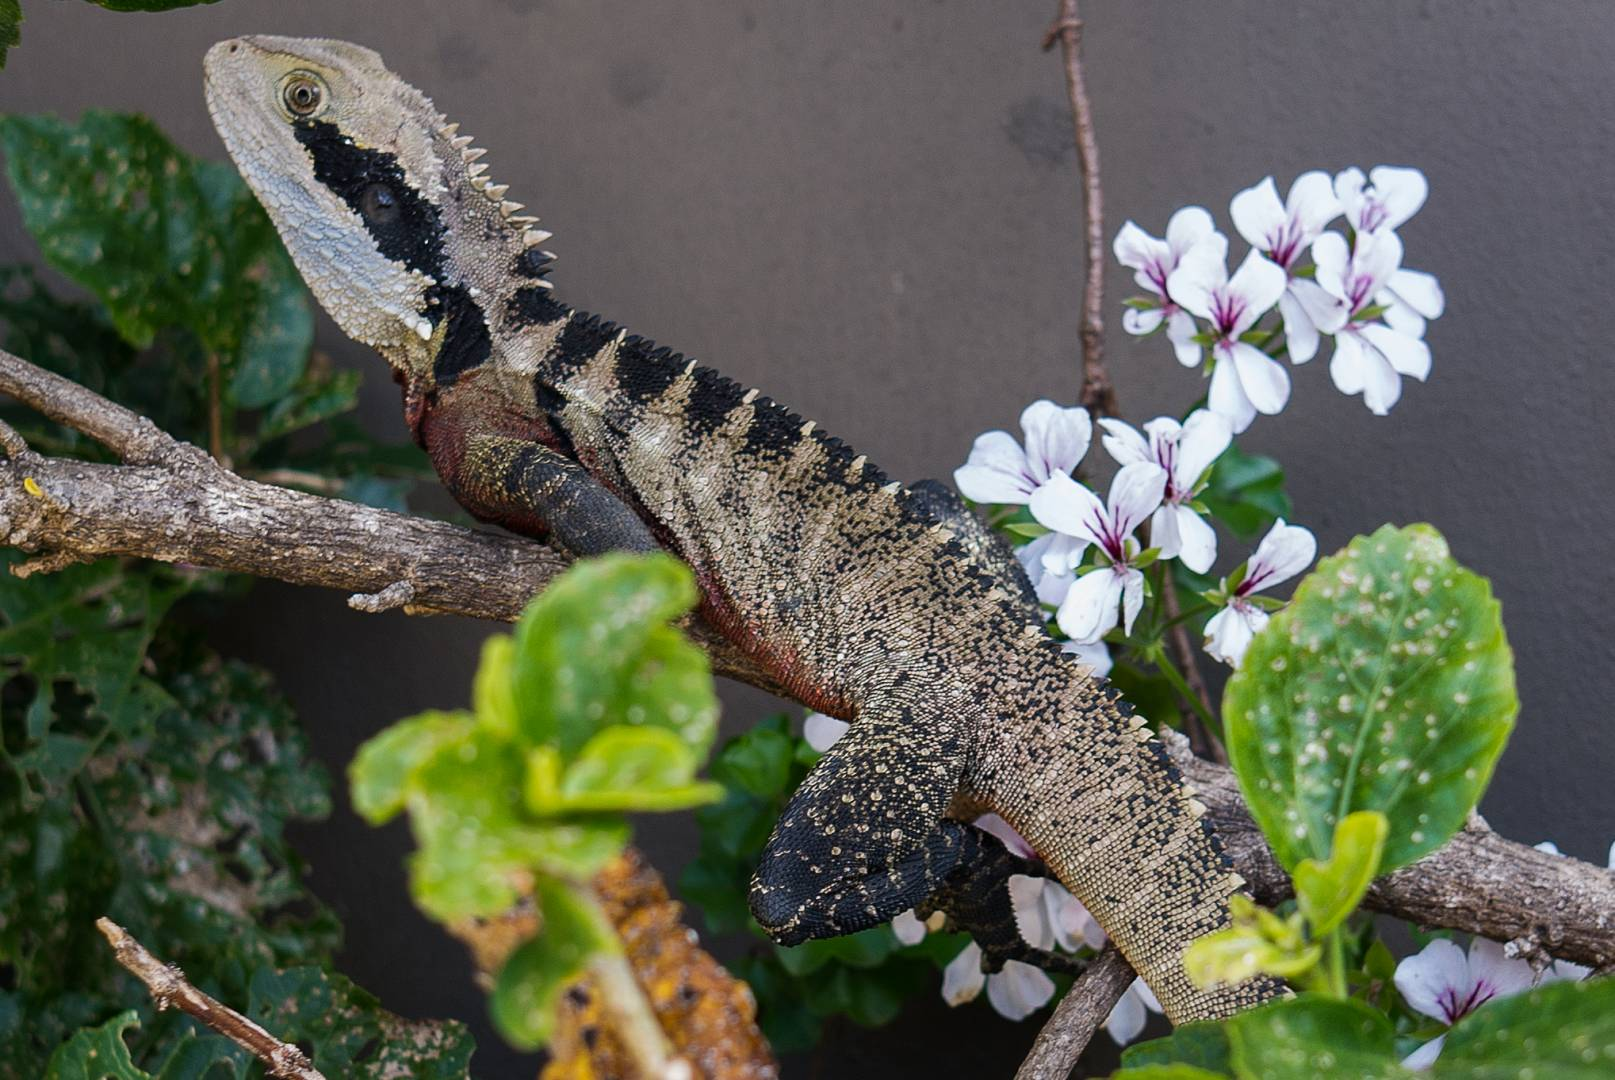 We learn such a lot at Macfilos: John Shingleton discovered this 100cm-long water dragon in his garden.